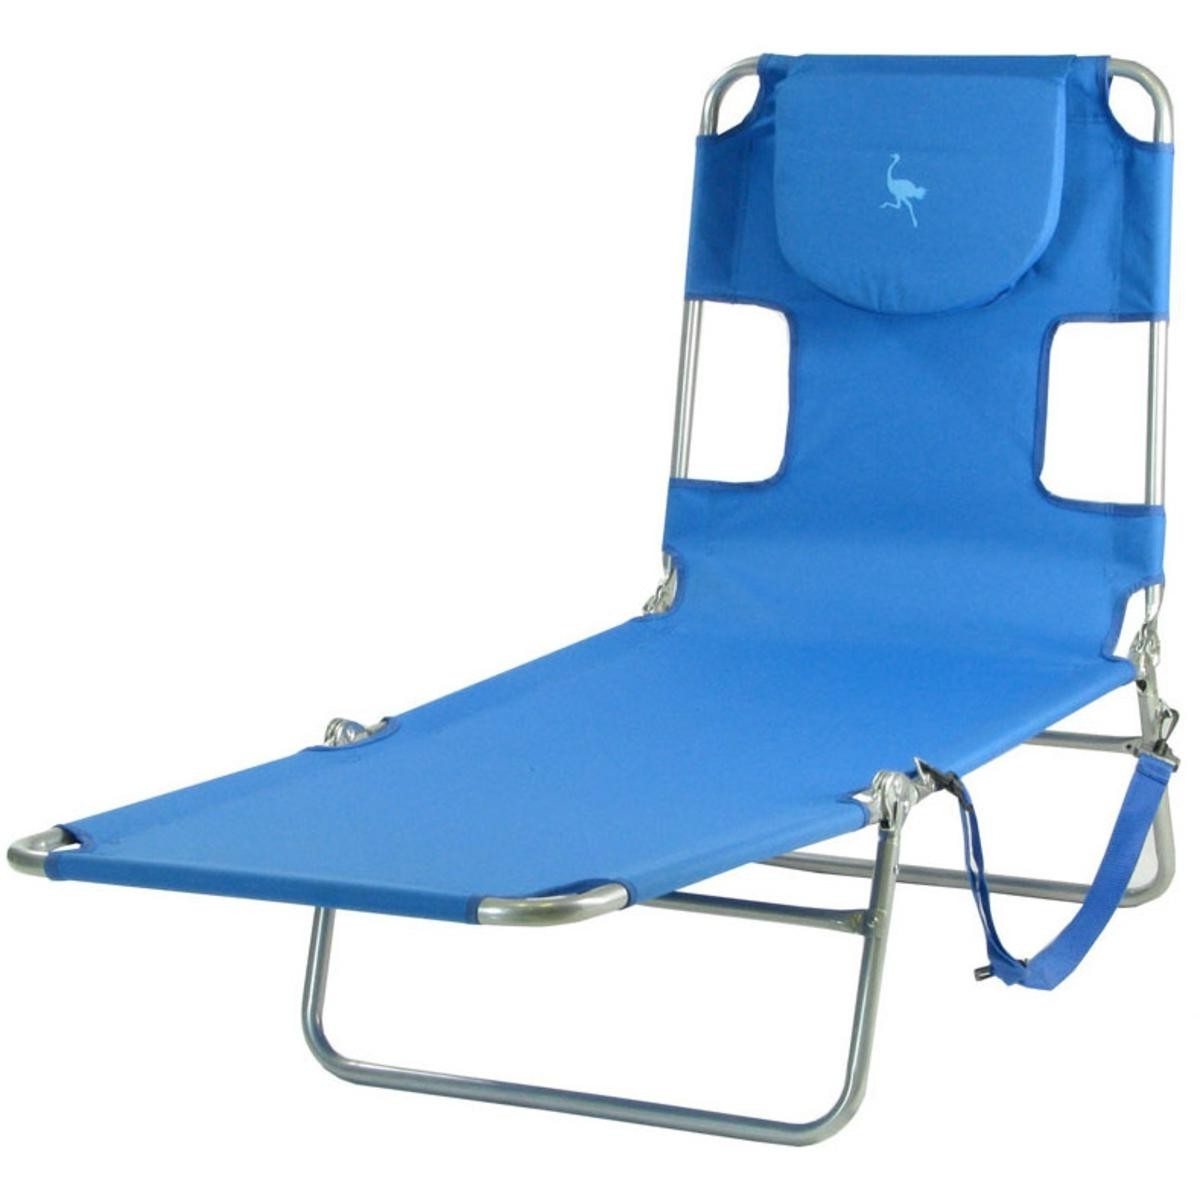 Famous Ostrich Mp102 Folding Beach Chaise Lounge Ocean Blue With Regard To Beach Chaise Lounge Chairs (View 9 of 15)